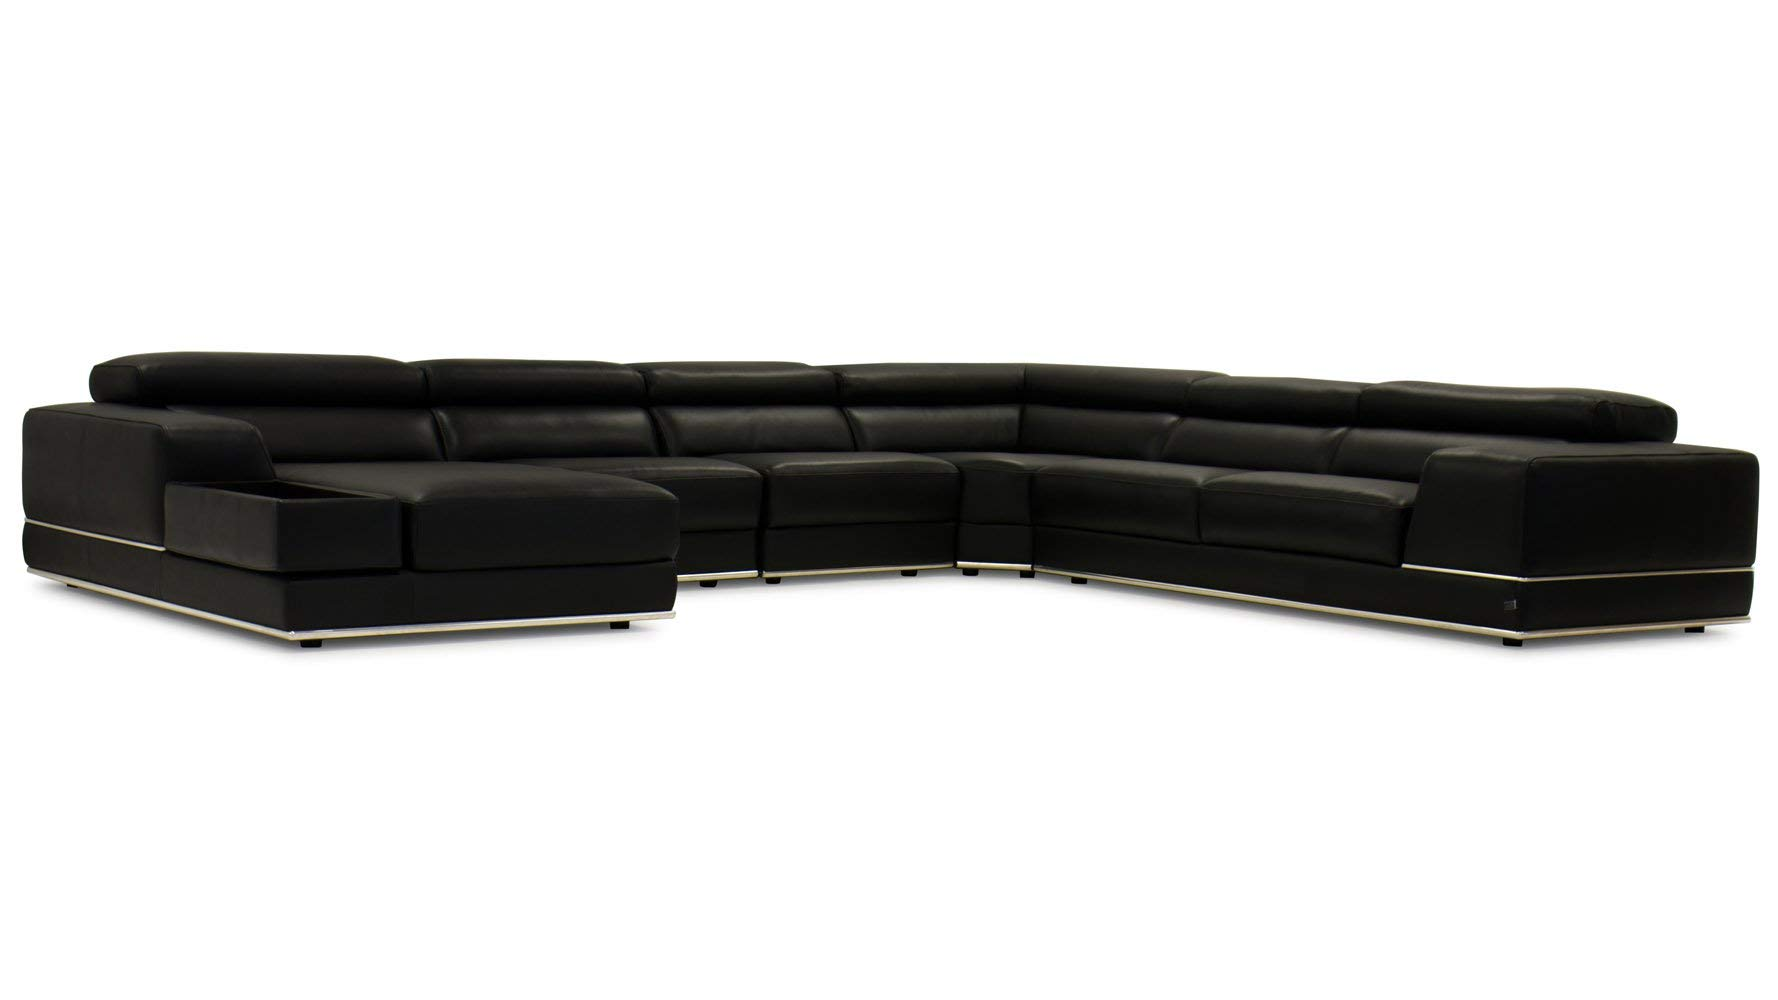 Zuri Furniture Wynn Black Leather Sectional Sofa With Adjustable